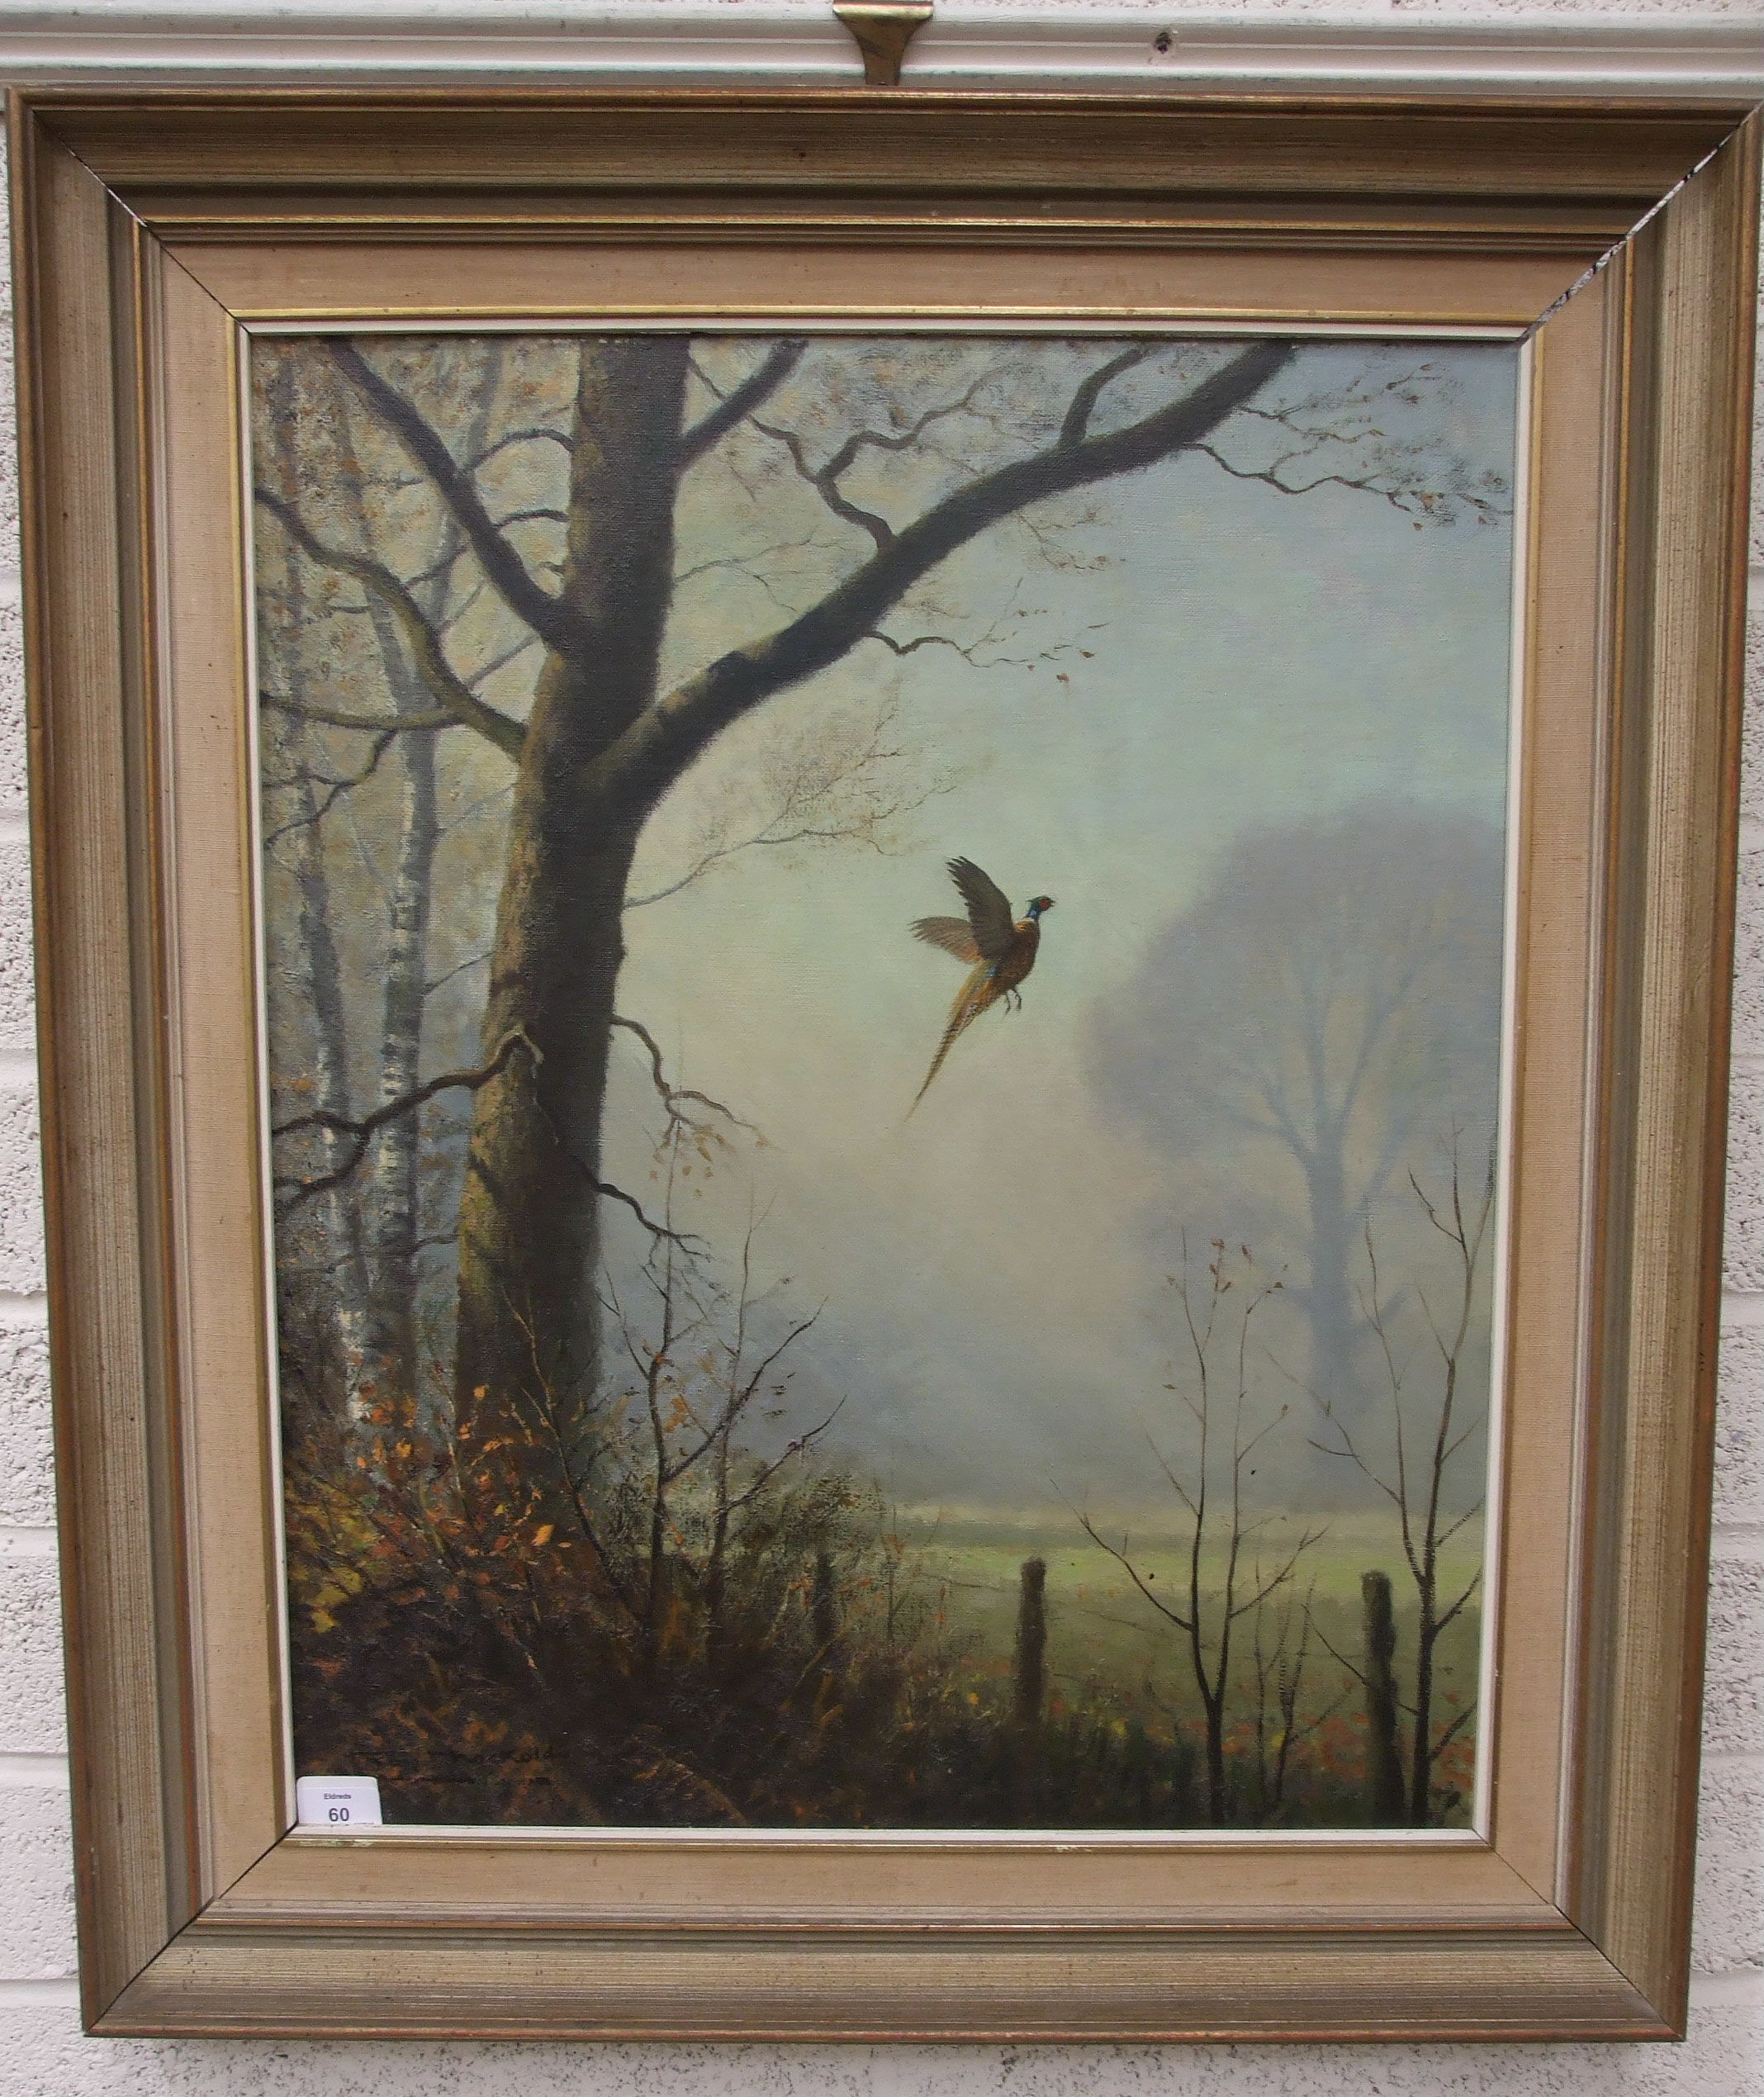 Lot 60 - Roy Nockolds, 'Pheasant rising in the early morning mist', signed oil on canvas, 67 x 54.5cm.